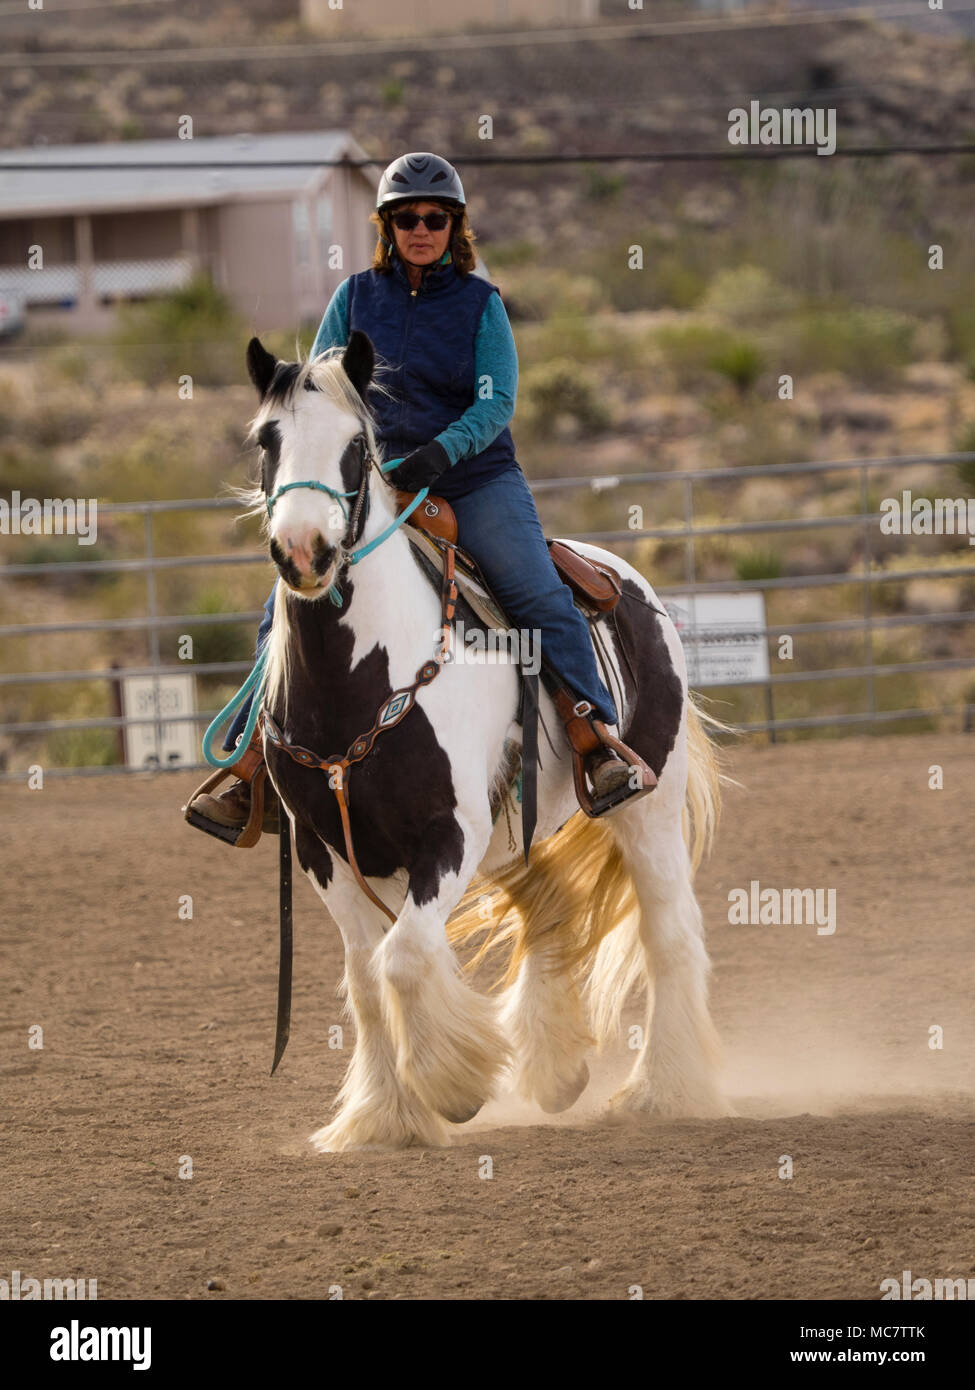 mature woman riding horse united states stock photos & mature woman